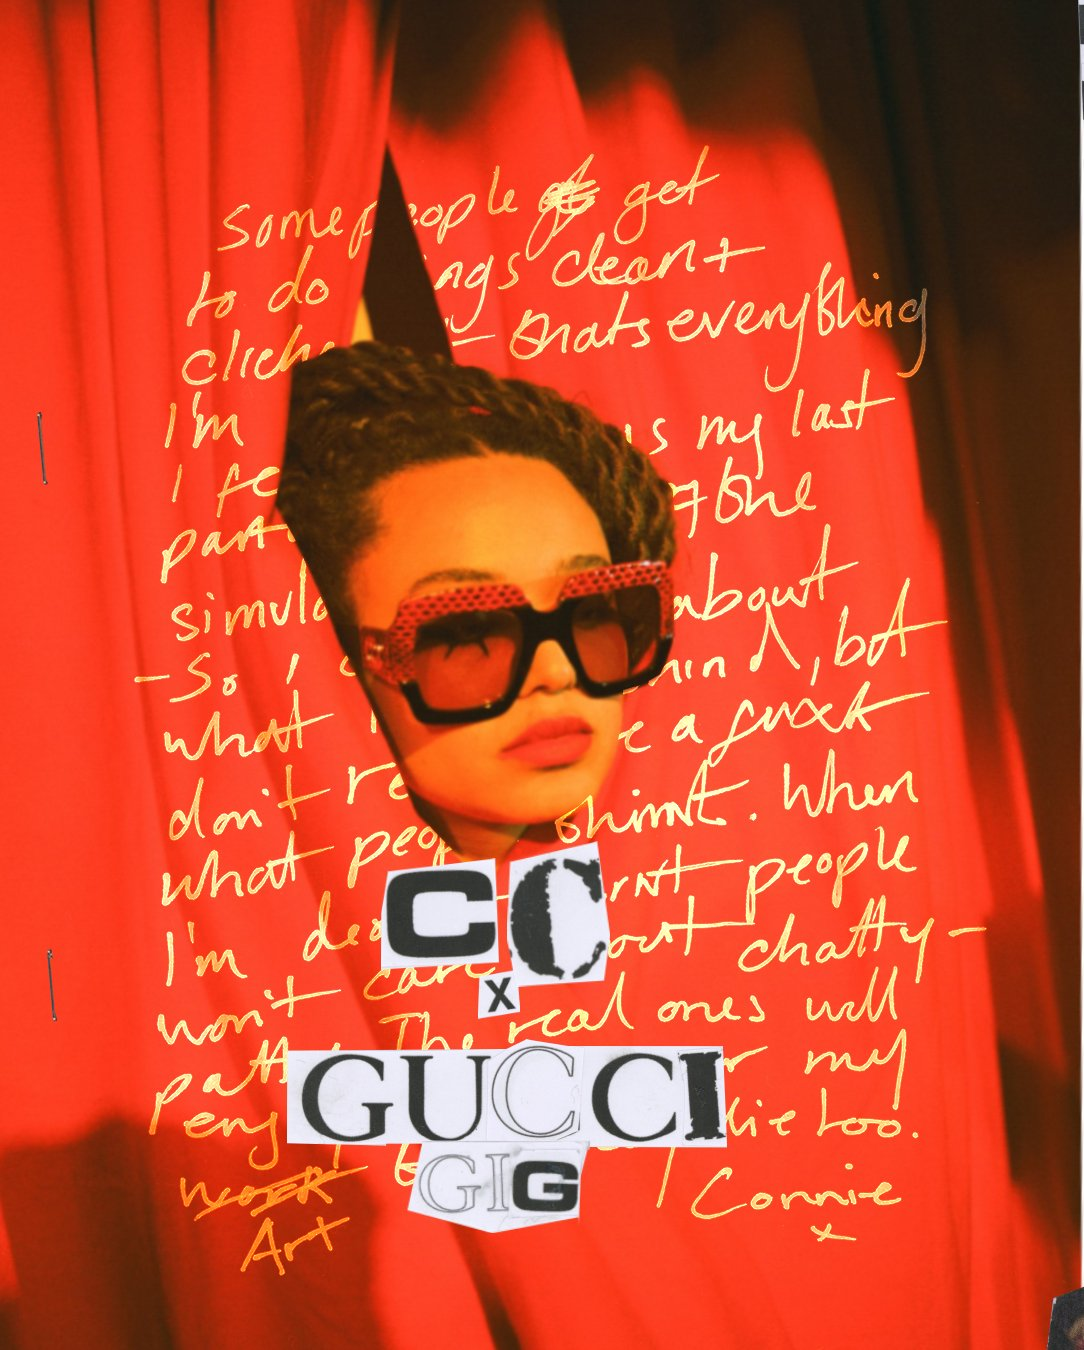 Inside a zine for #GucciGig @ConnieW4tford directed and produced with graphic designer Morgan Benjamin and photographer Sophie Jones, the British singer-songwriter is seen on and off-stage, wearing #GucciEyewear oversized glasses in Havana acetate and grey leather. https://t.co/oWeOJ5ZrZP